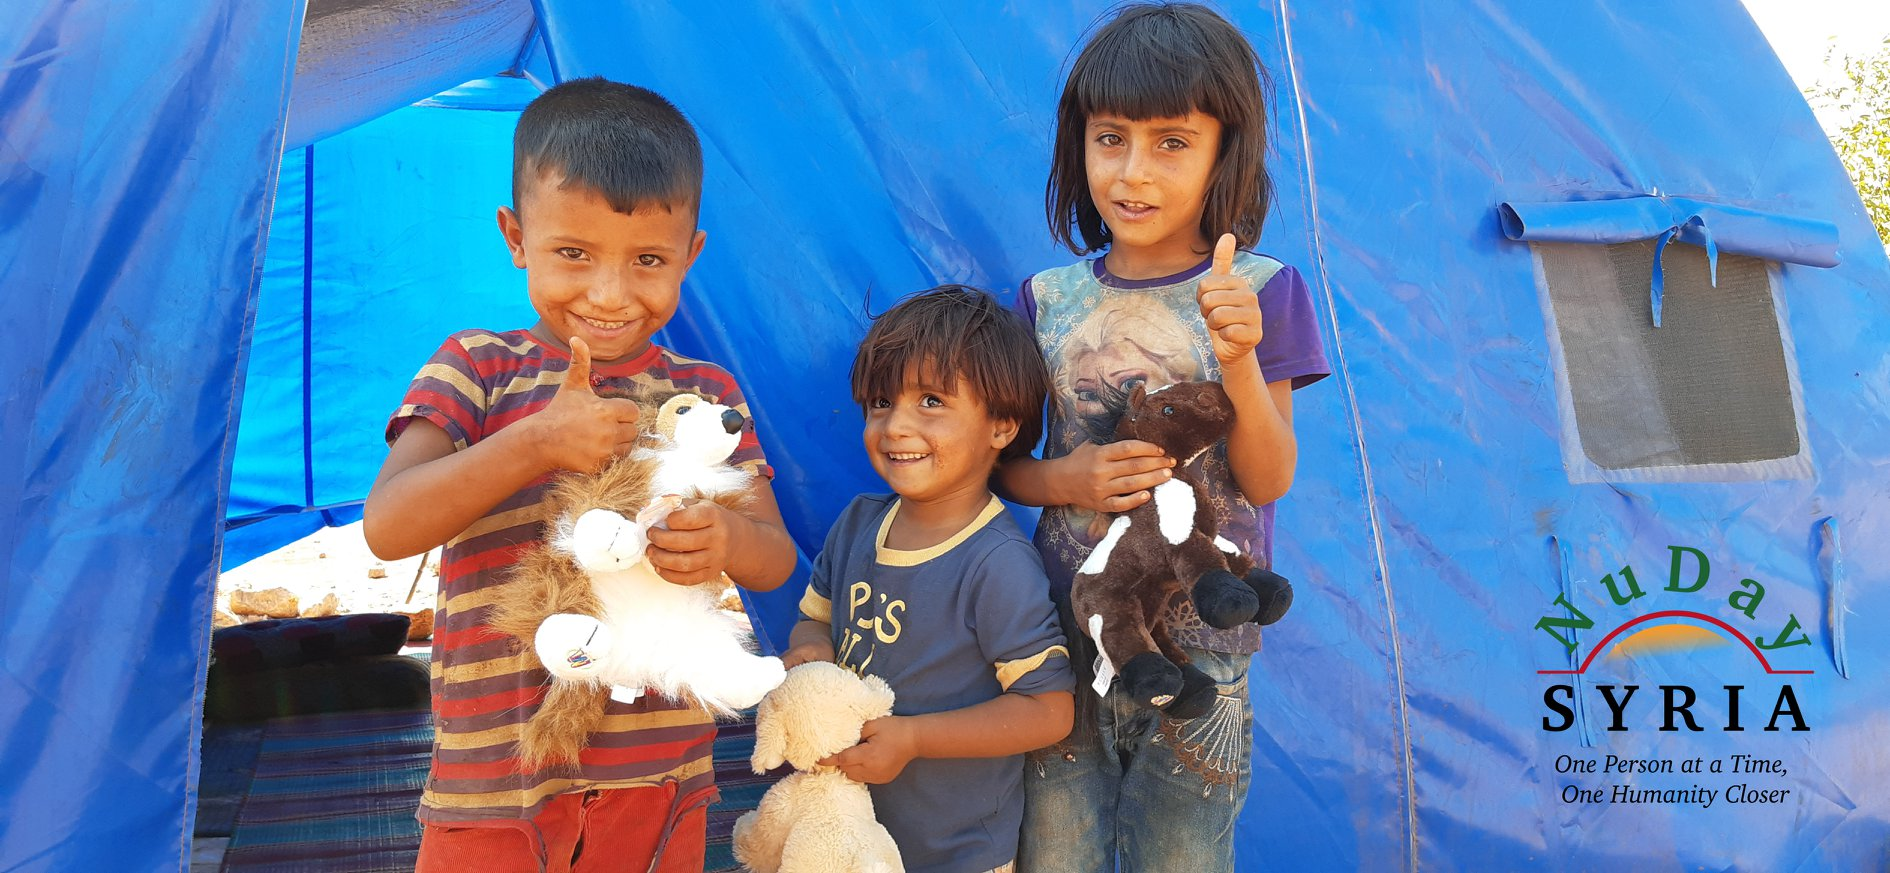 A boy in a red and brown striped shirt stands with his toddler brother (wearing a blue shirt) and older sister (in a purple Frozen tshirt) in front of a make-shift tent. All of the children are holding onto a stuffed animal.